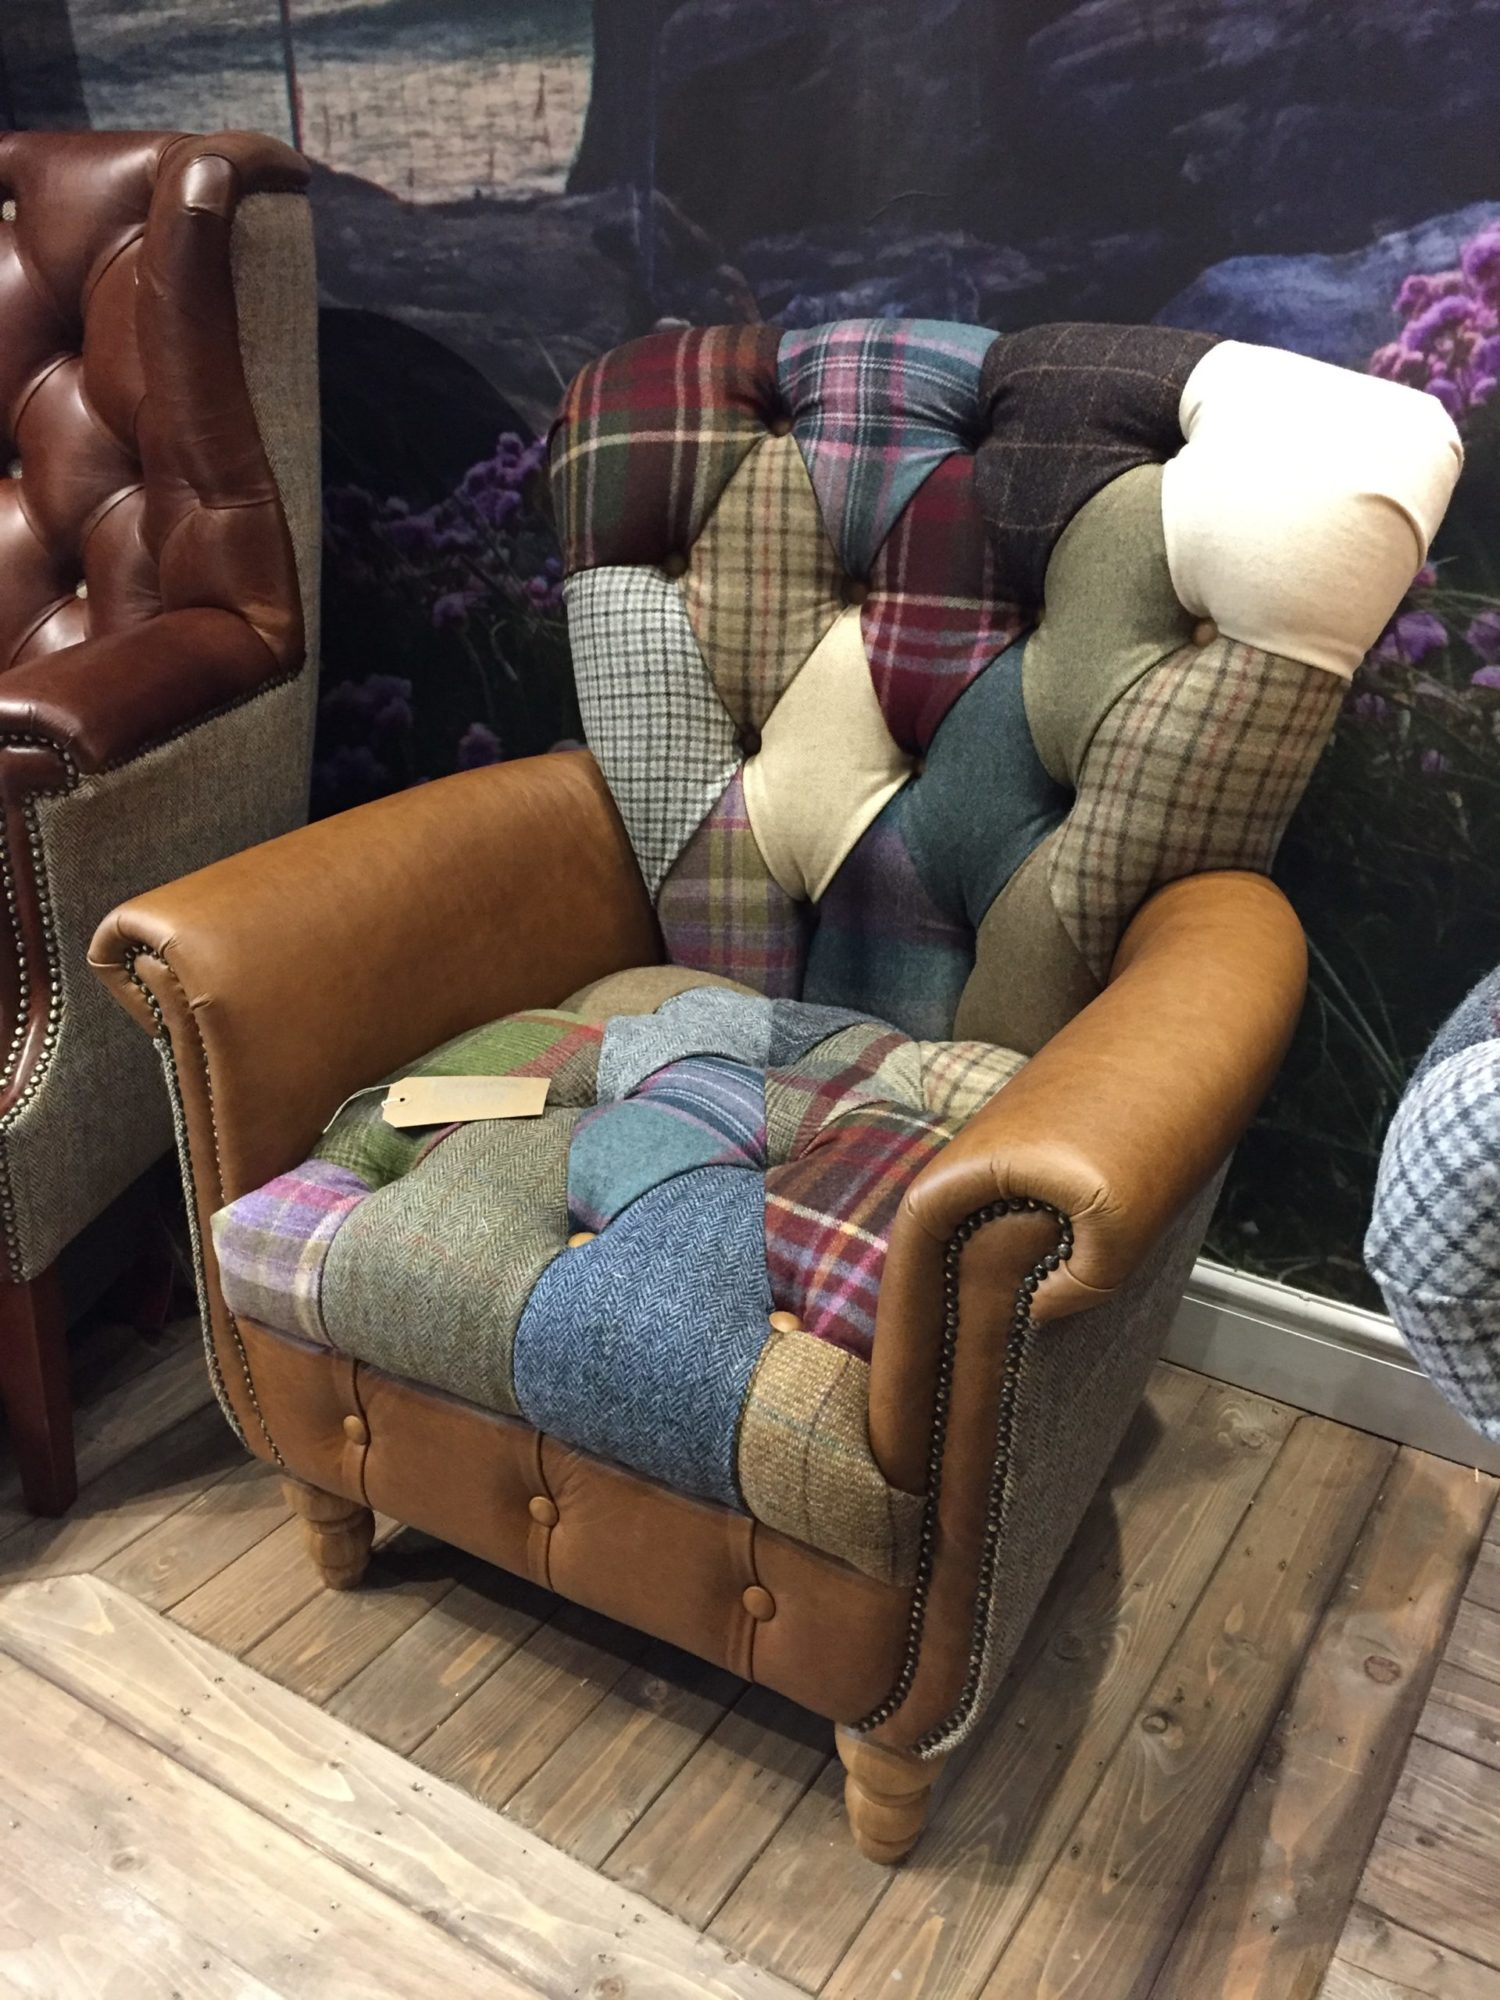 Vintage Sofa Co Gotham Harlequin Fast Track Chair in patchwork harris tweed and wool fabric with cerato brown leather arms and detailing on turned oak legs in showroom